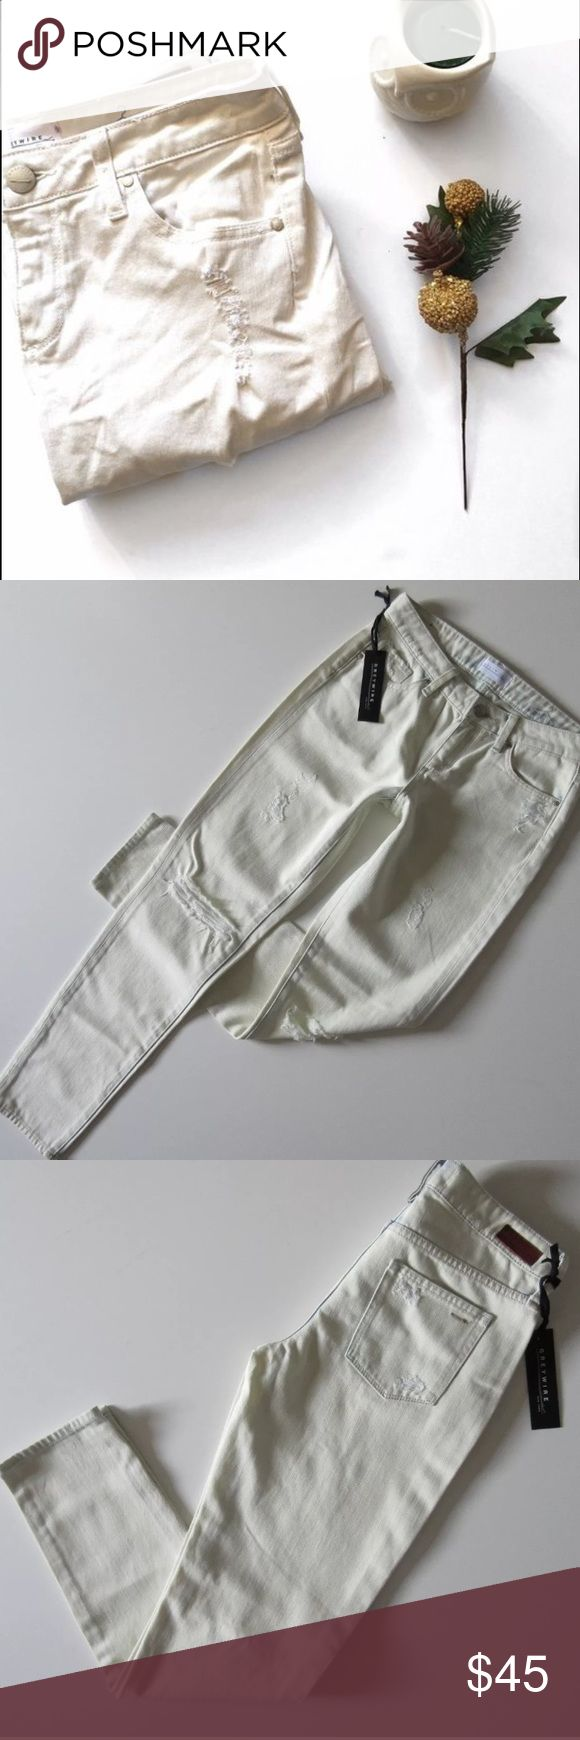 Anthropologie Destroyed Boyfriend Slouch Jeans 26 Distressed bleached out light wash jeans. Shredded holes and a slightly slouchy fit. These will quickly become your go-to summer jeans! Brand new. Perfect condition. Greywire Jeans Boyfriend